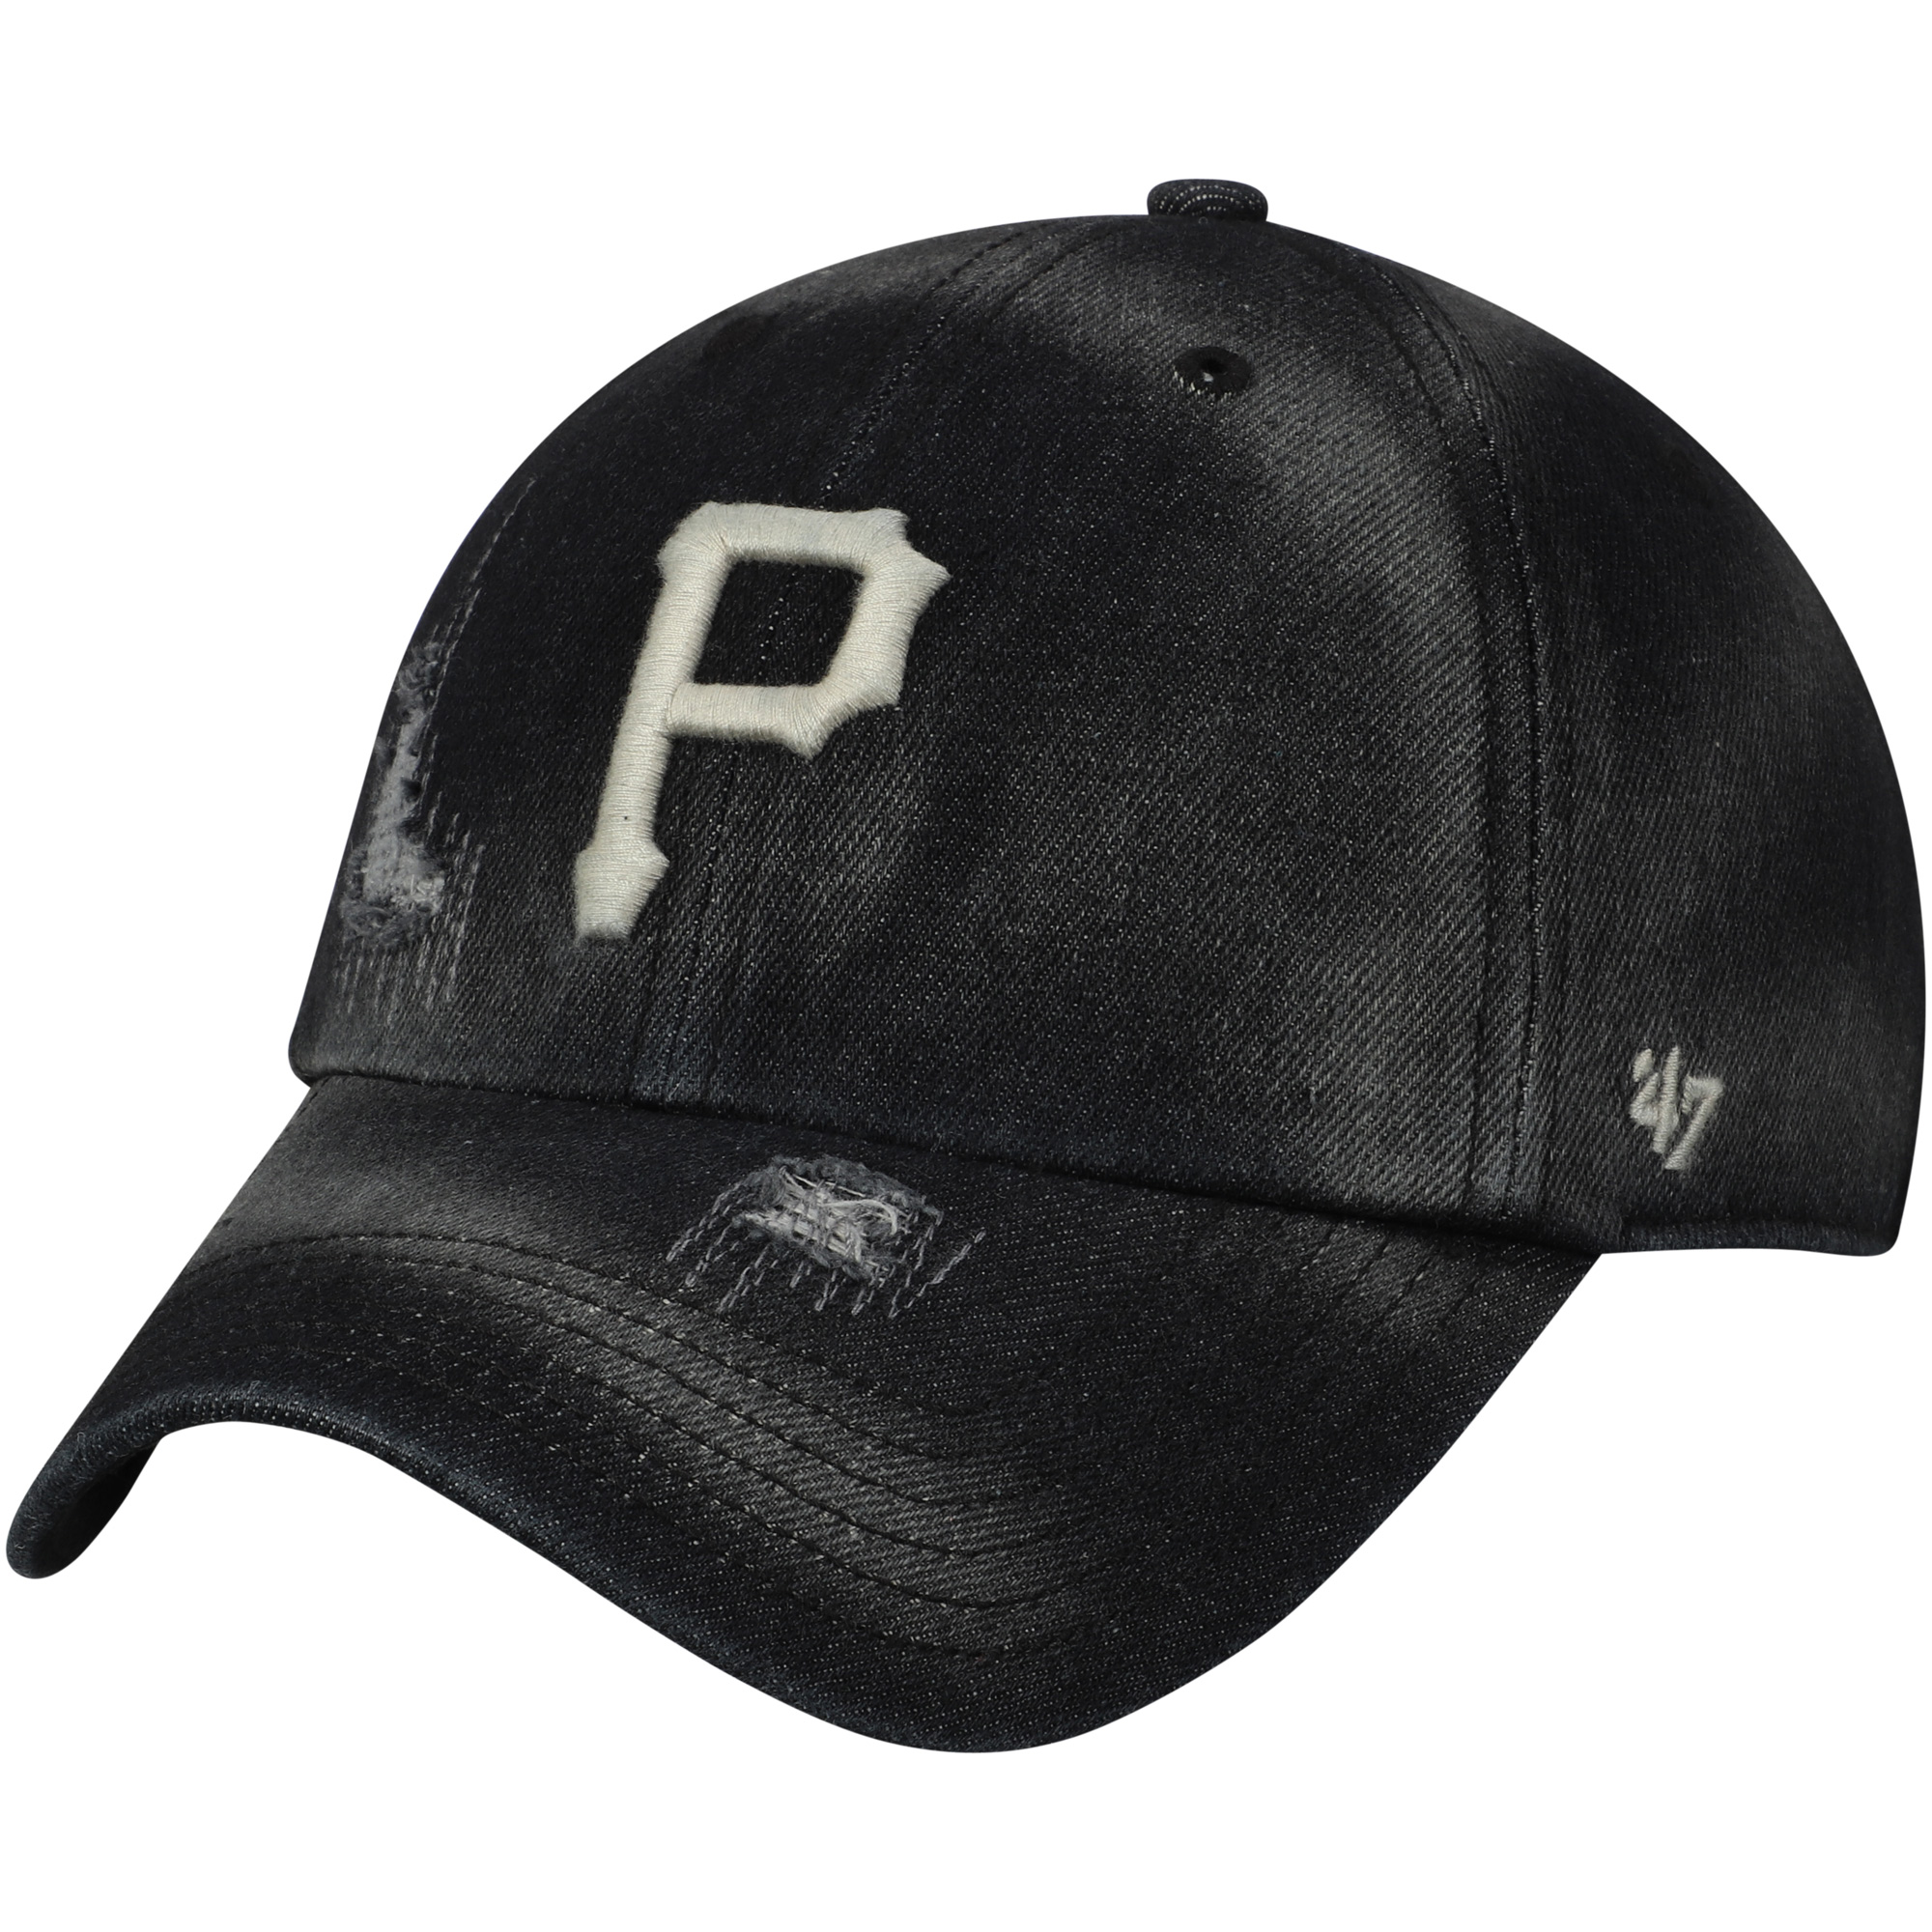 Pittsburgh Pirates '47 Loughlin Clean Up Adjustable Hat - Black - OSFA